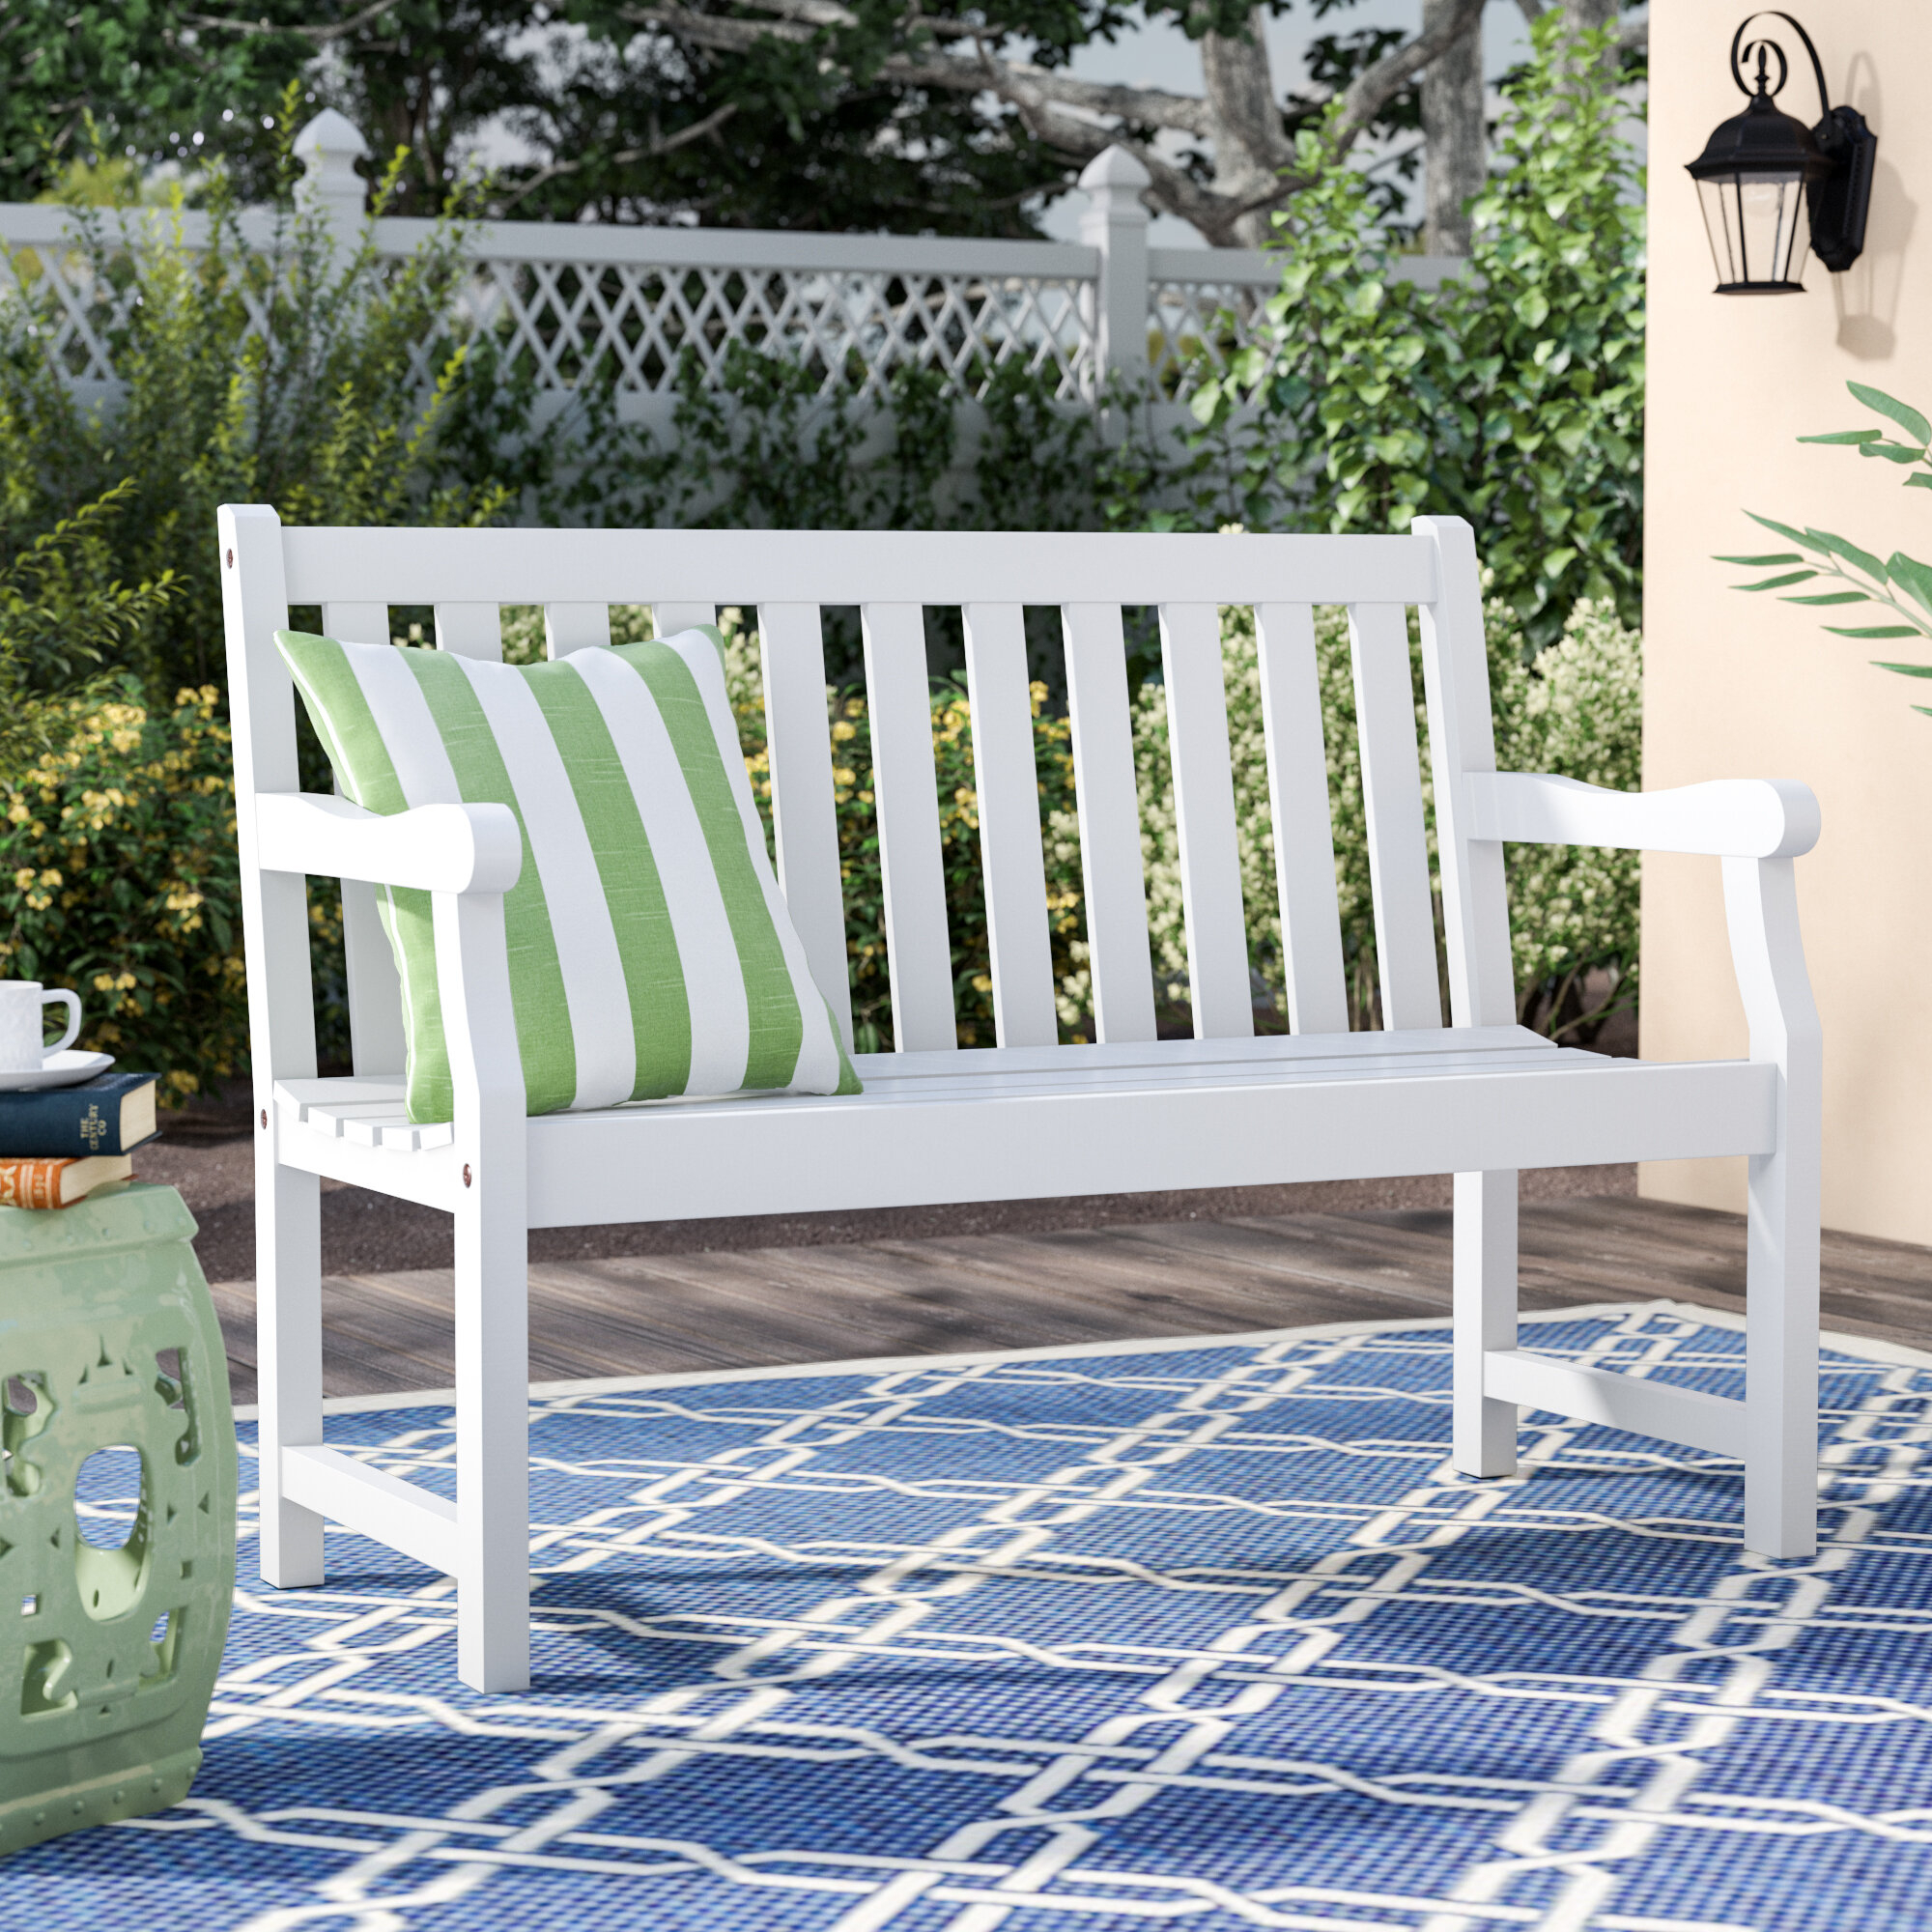 Cushionless Outdoor Benches You'Ll Love In 2020 | Wayfair With Regard To Aranita Tree Of Life Iron Garden Benches (View 14 of 25)